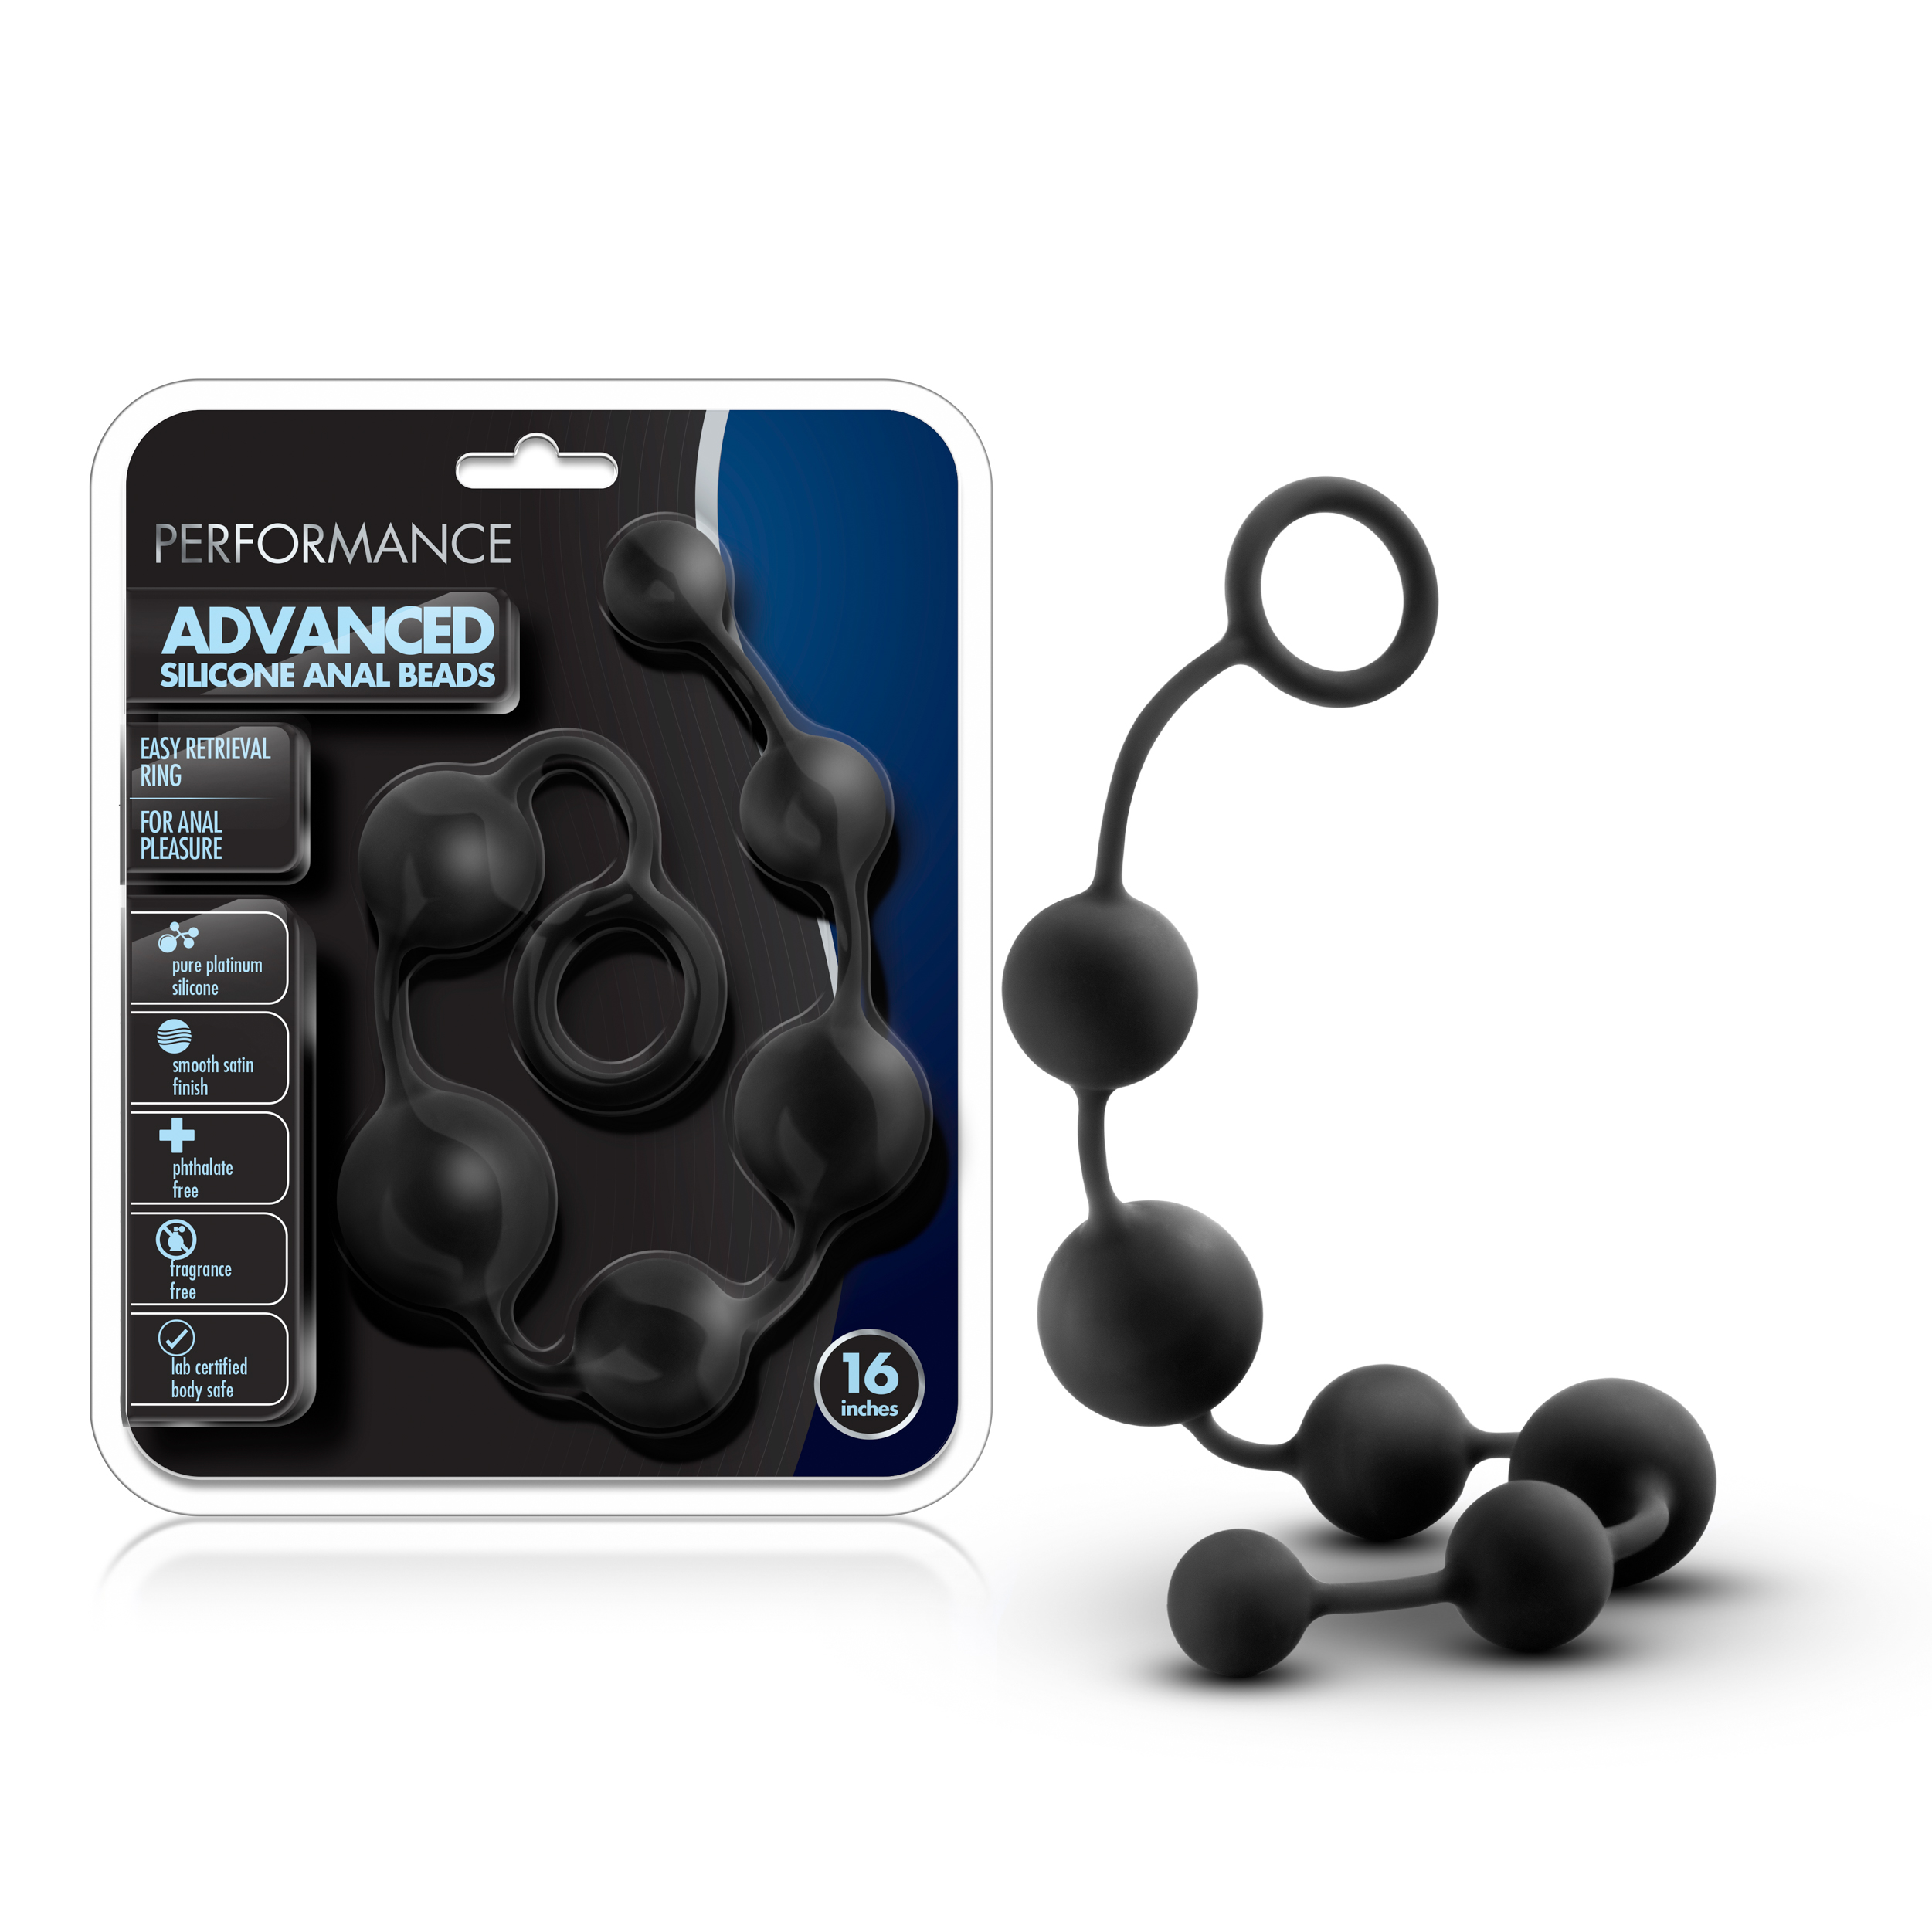 Performance - 16 Inch Silicone Anal Beads - Black